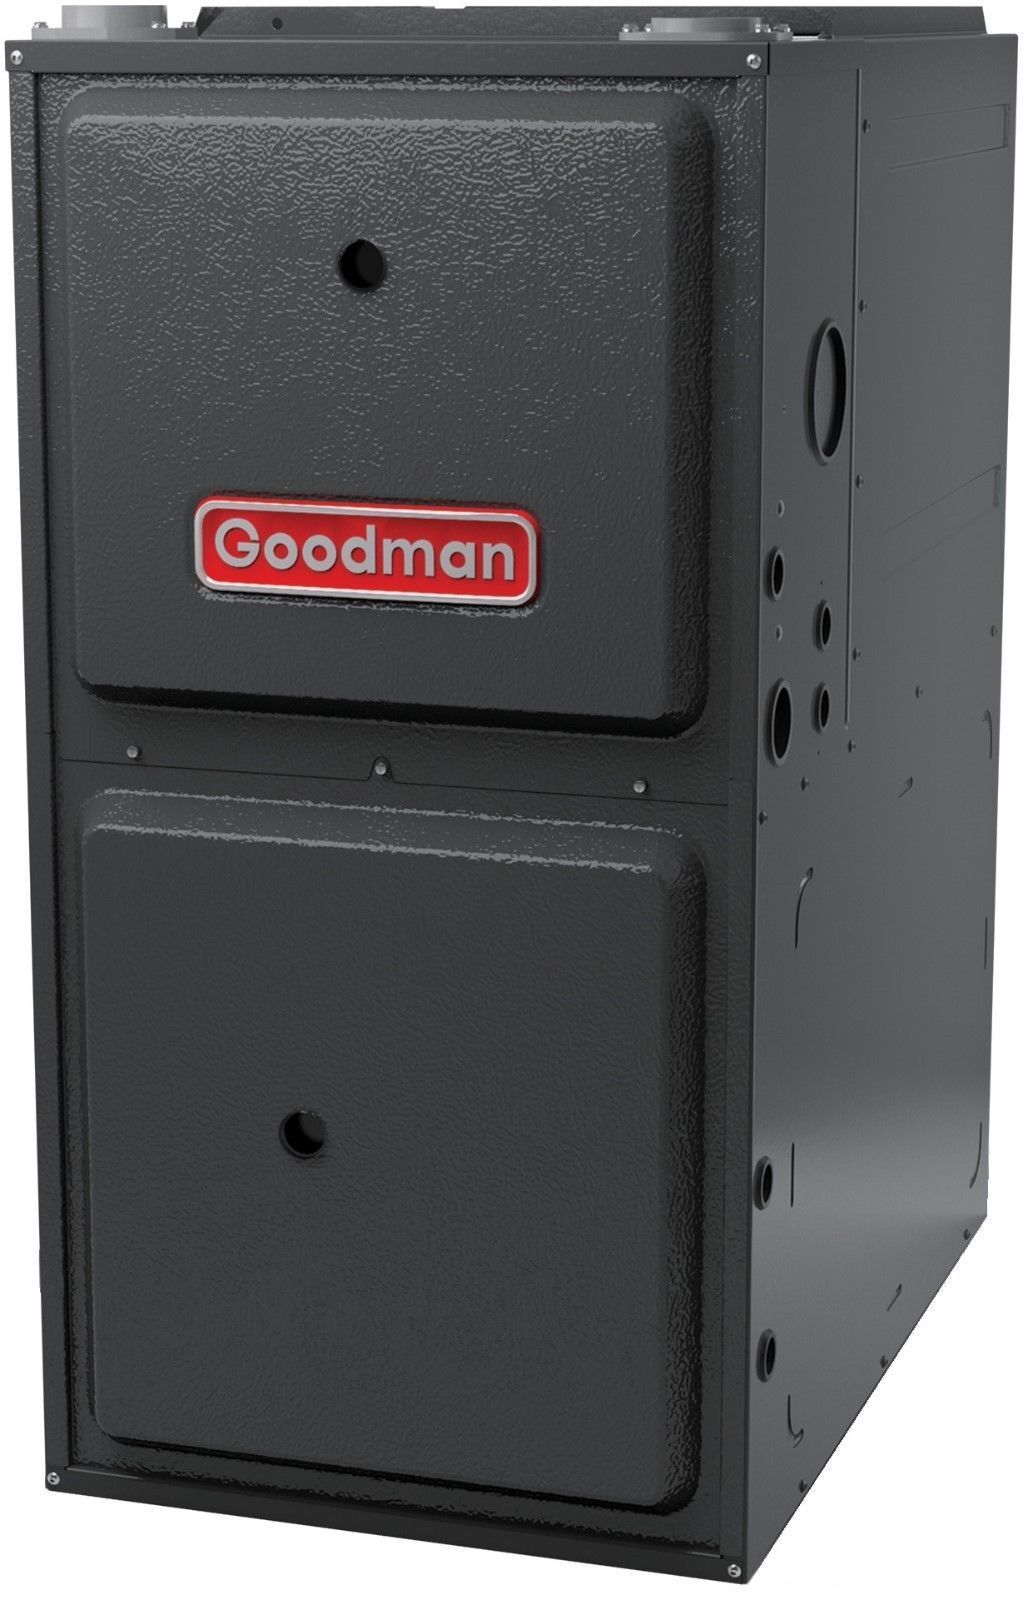 Goodman 40,000 BTU Upflow Horizontal 92% Efficiency Propane